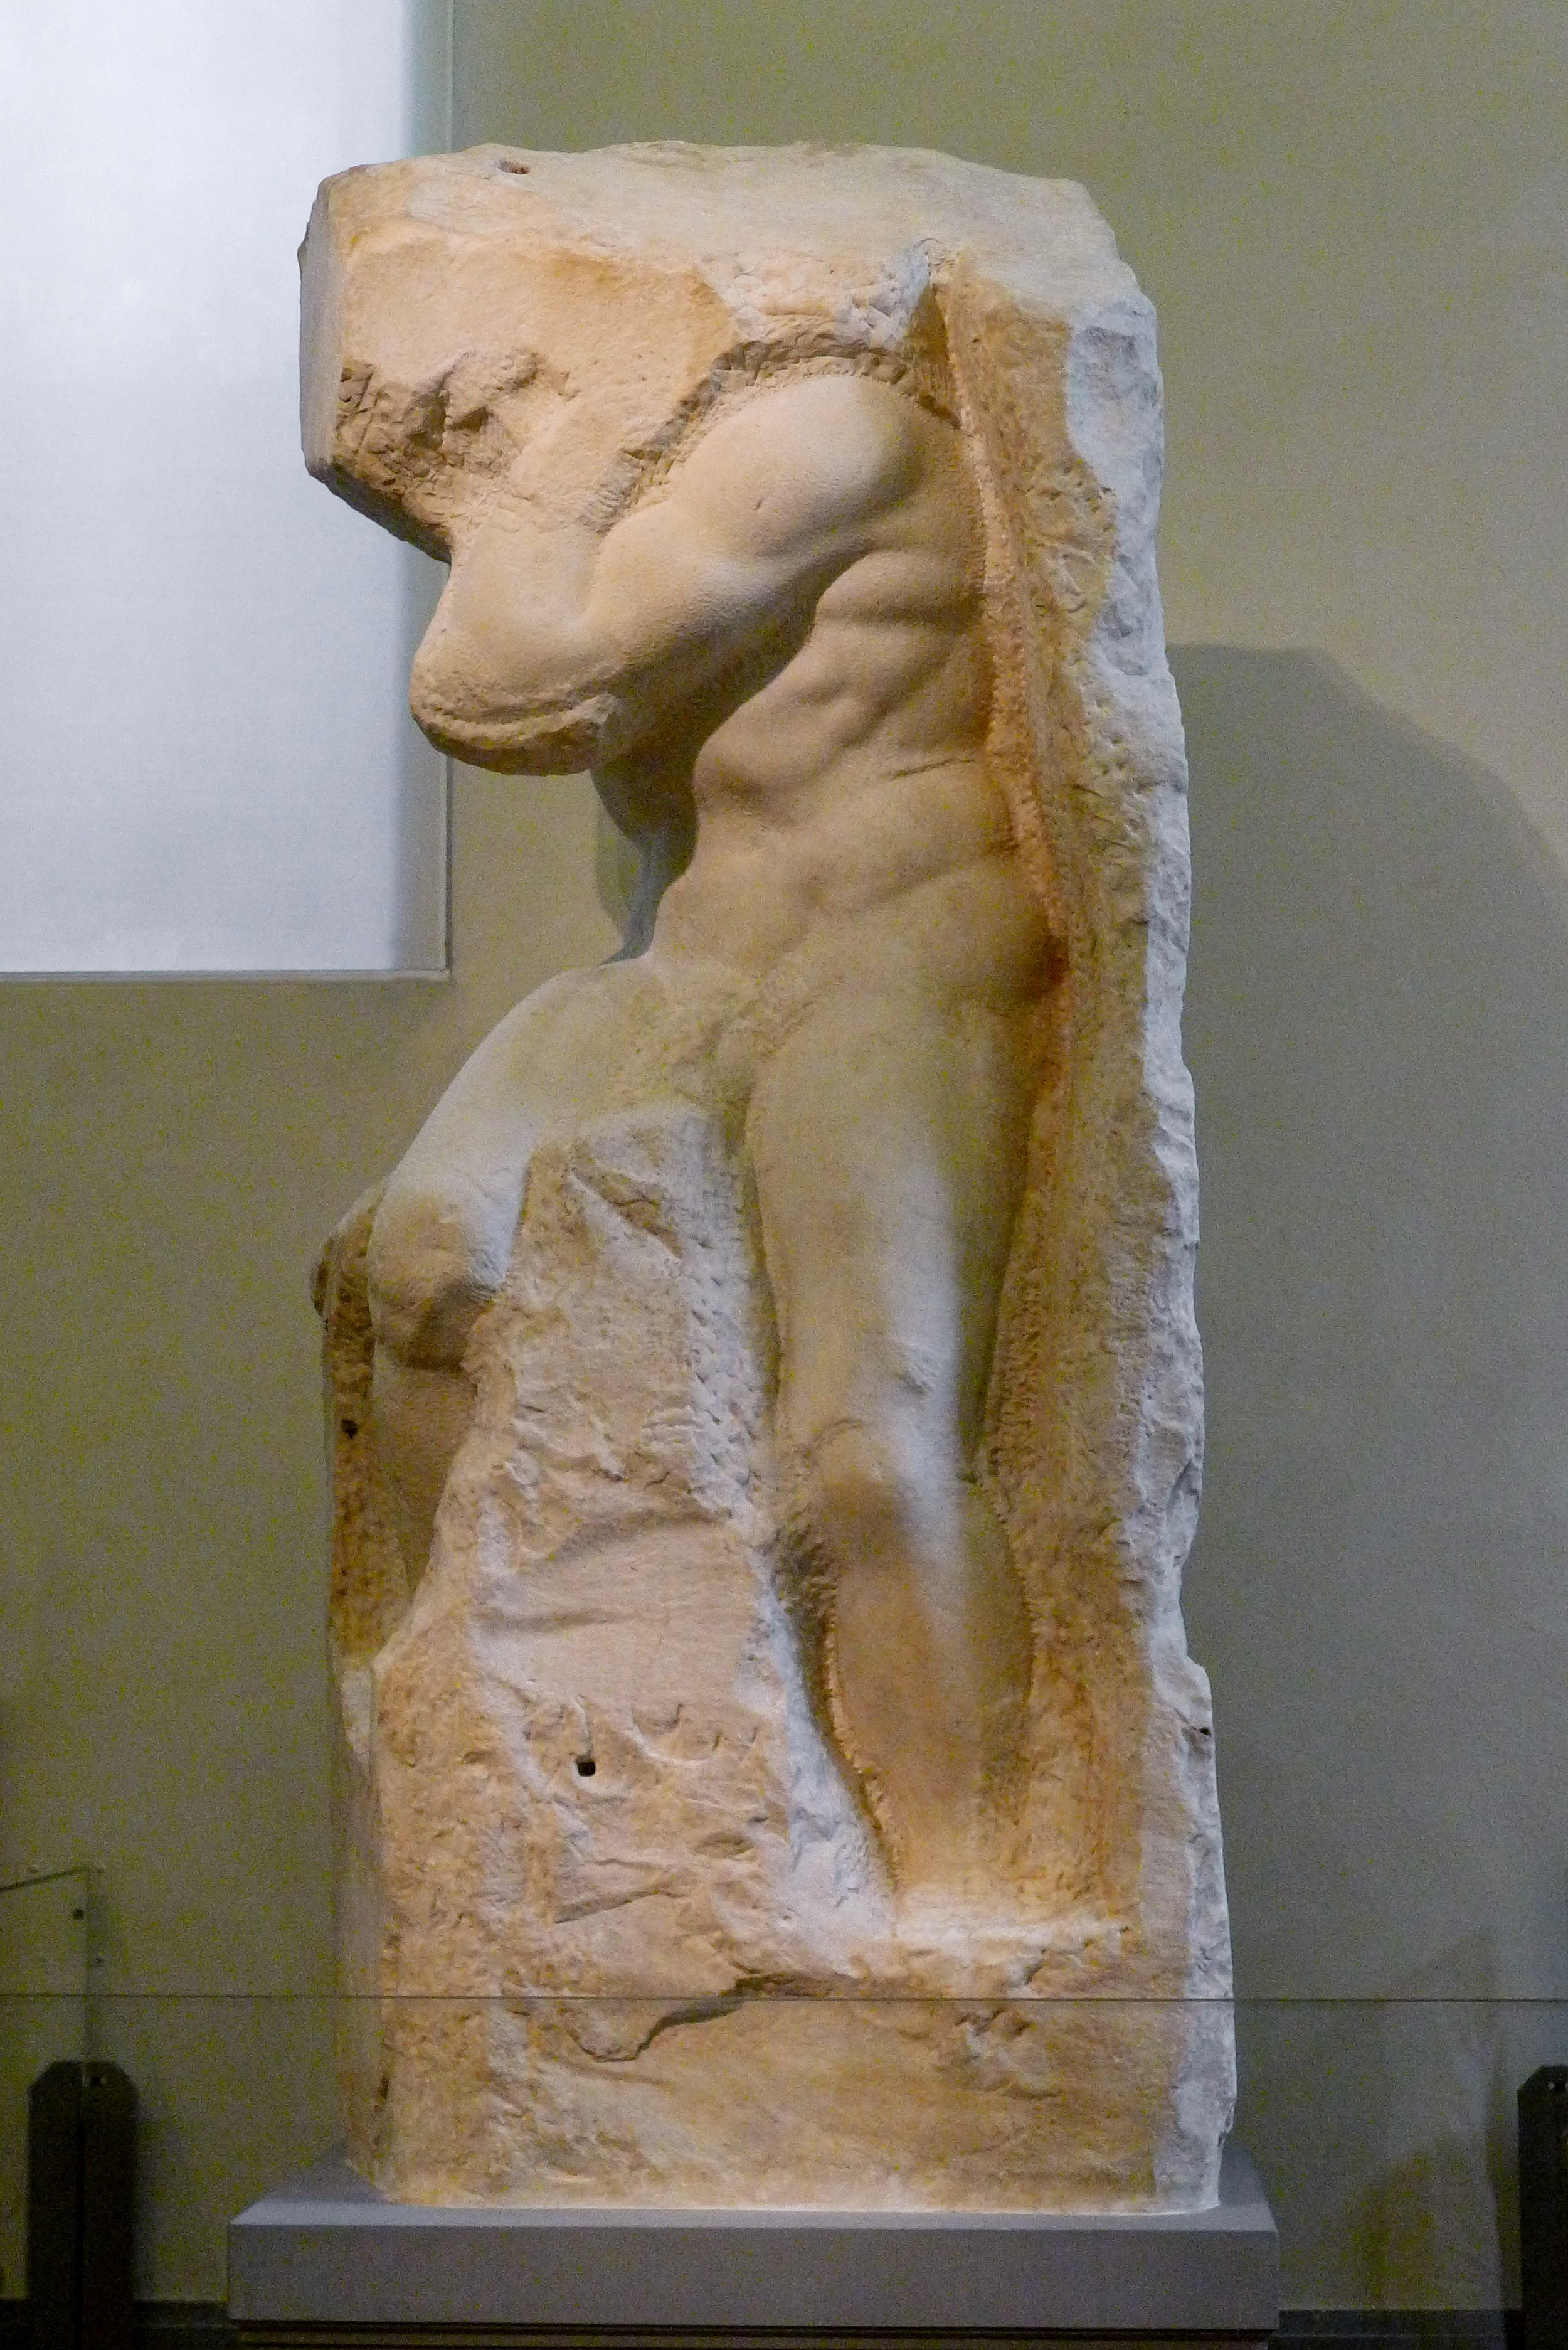 'Atlas_Slave'_by_Michelangelo_-_JBU_01.jpg